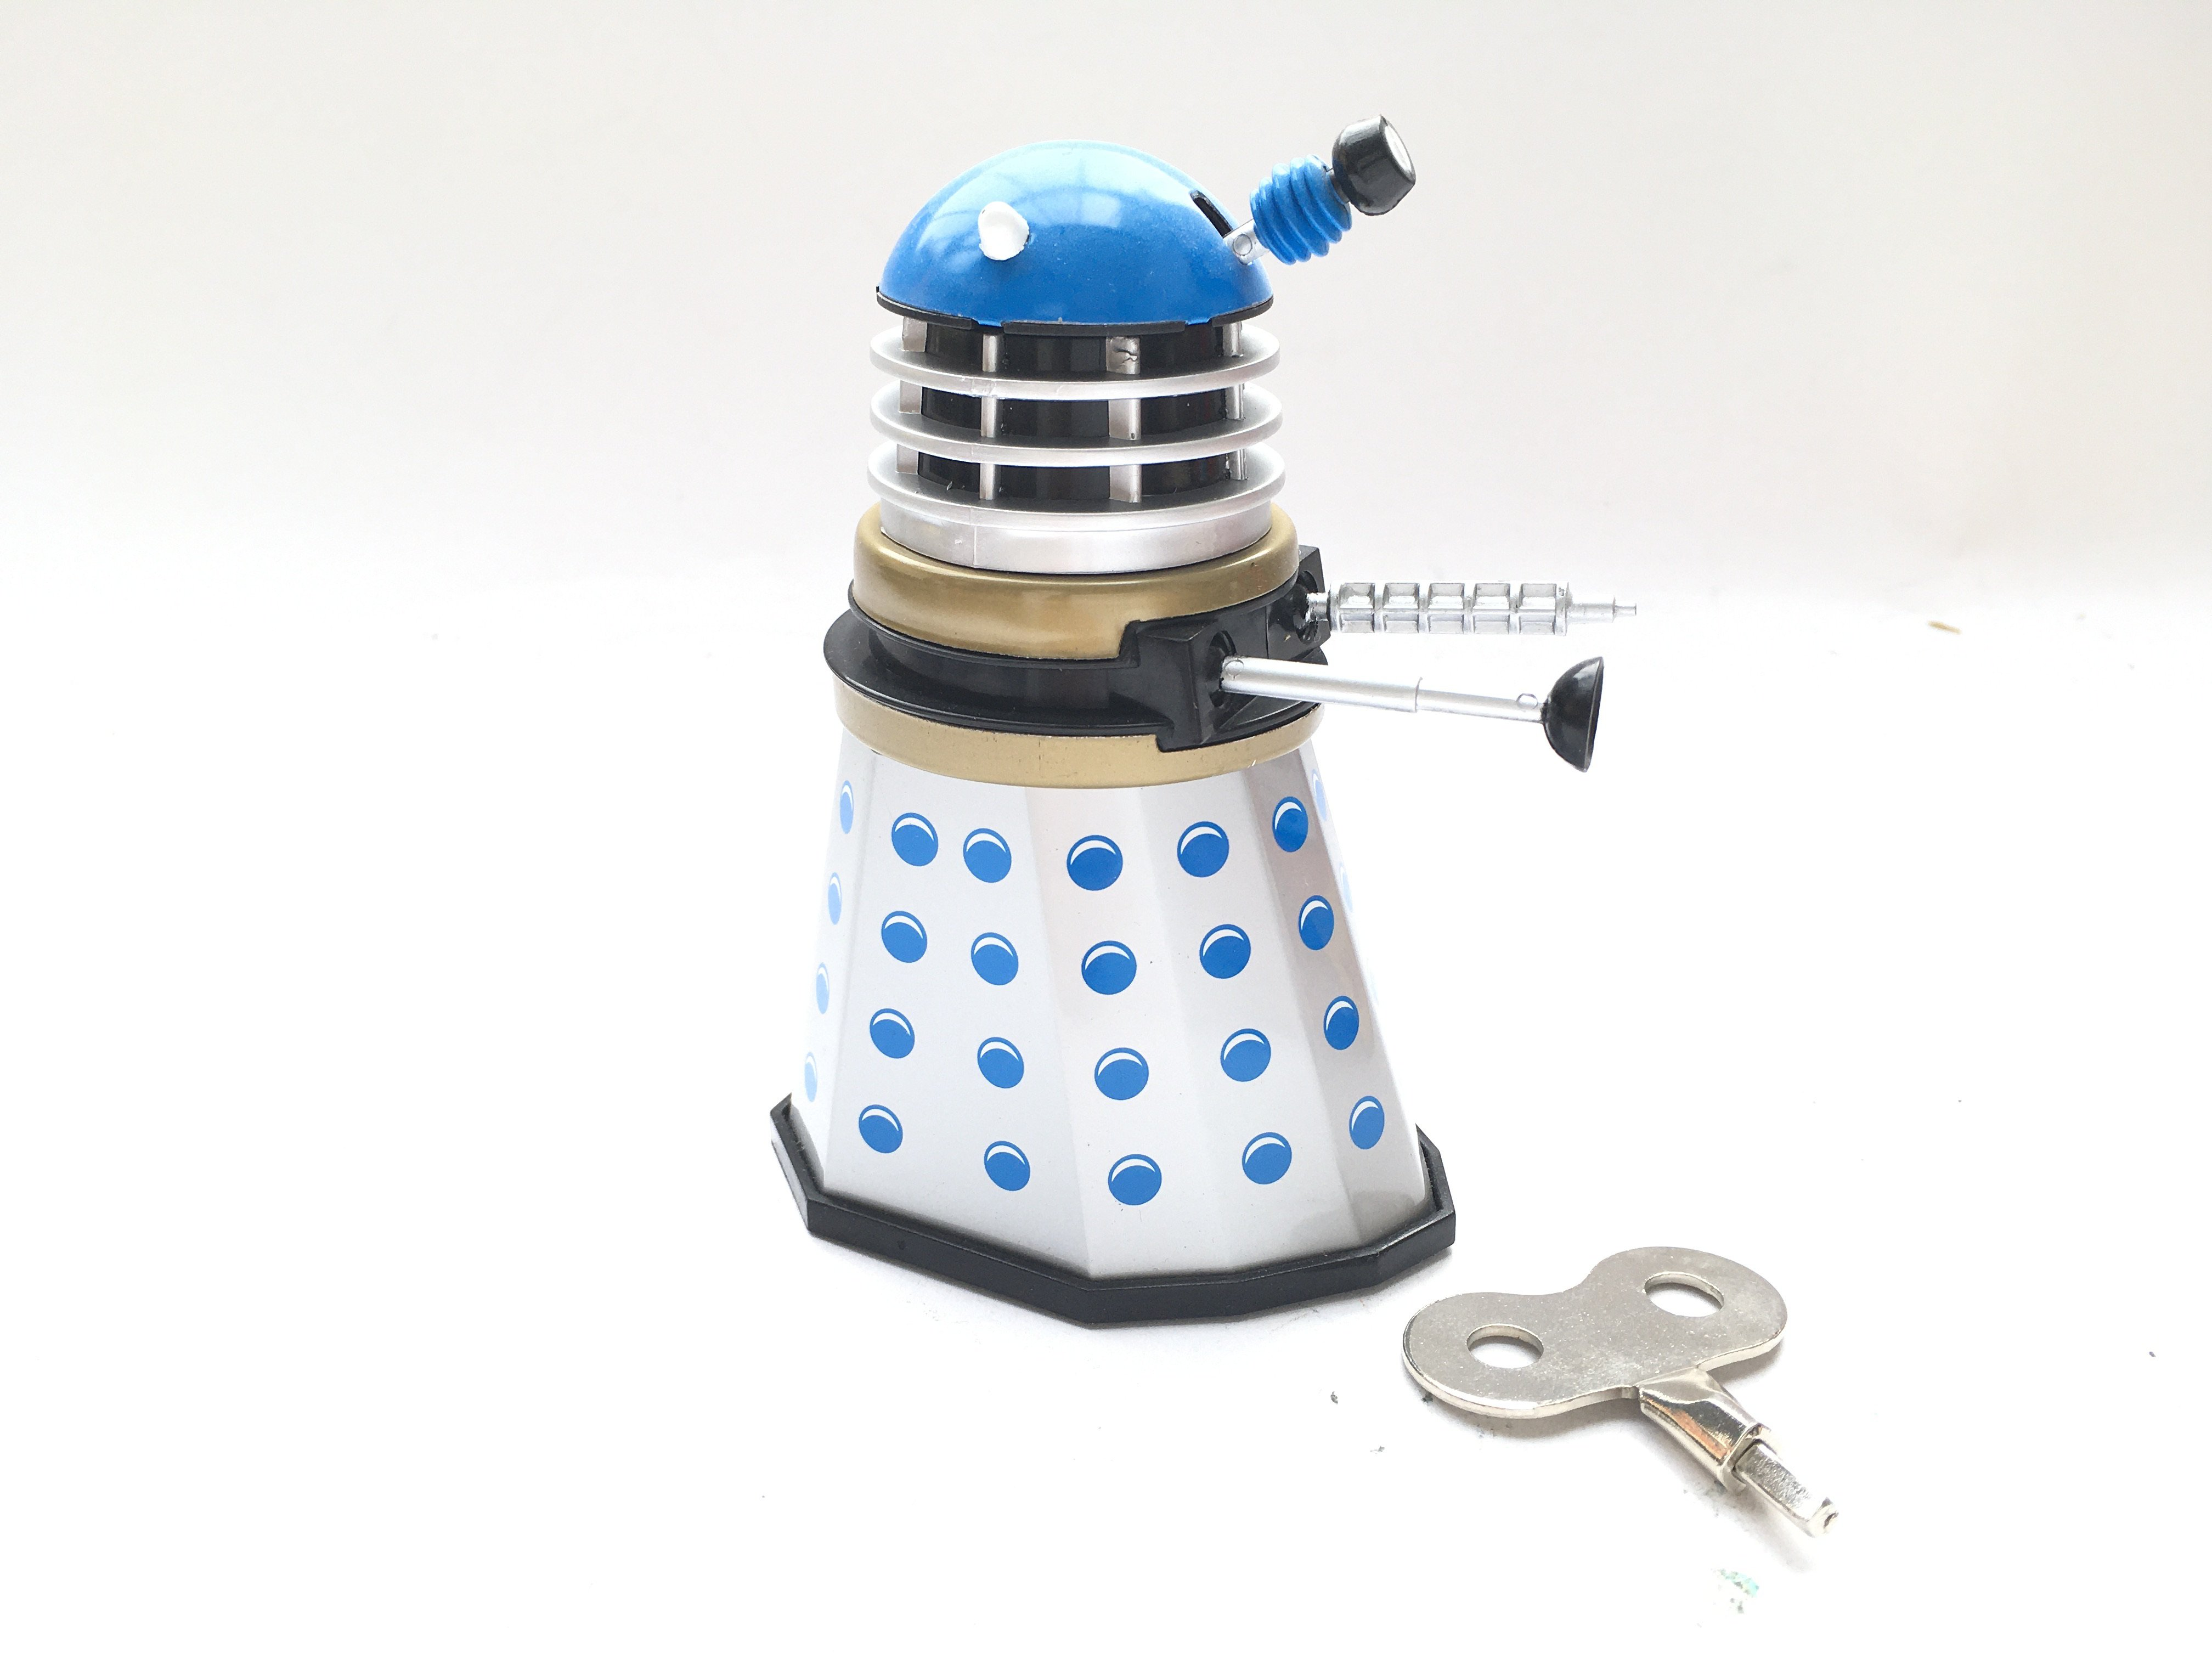 A Doctor Who Product Enterprise Limited Clockwork - Image 2 of 3